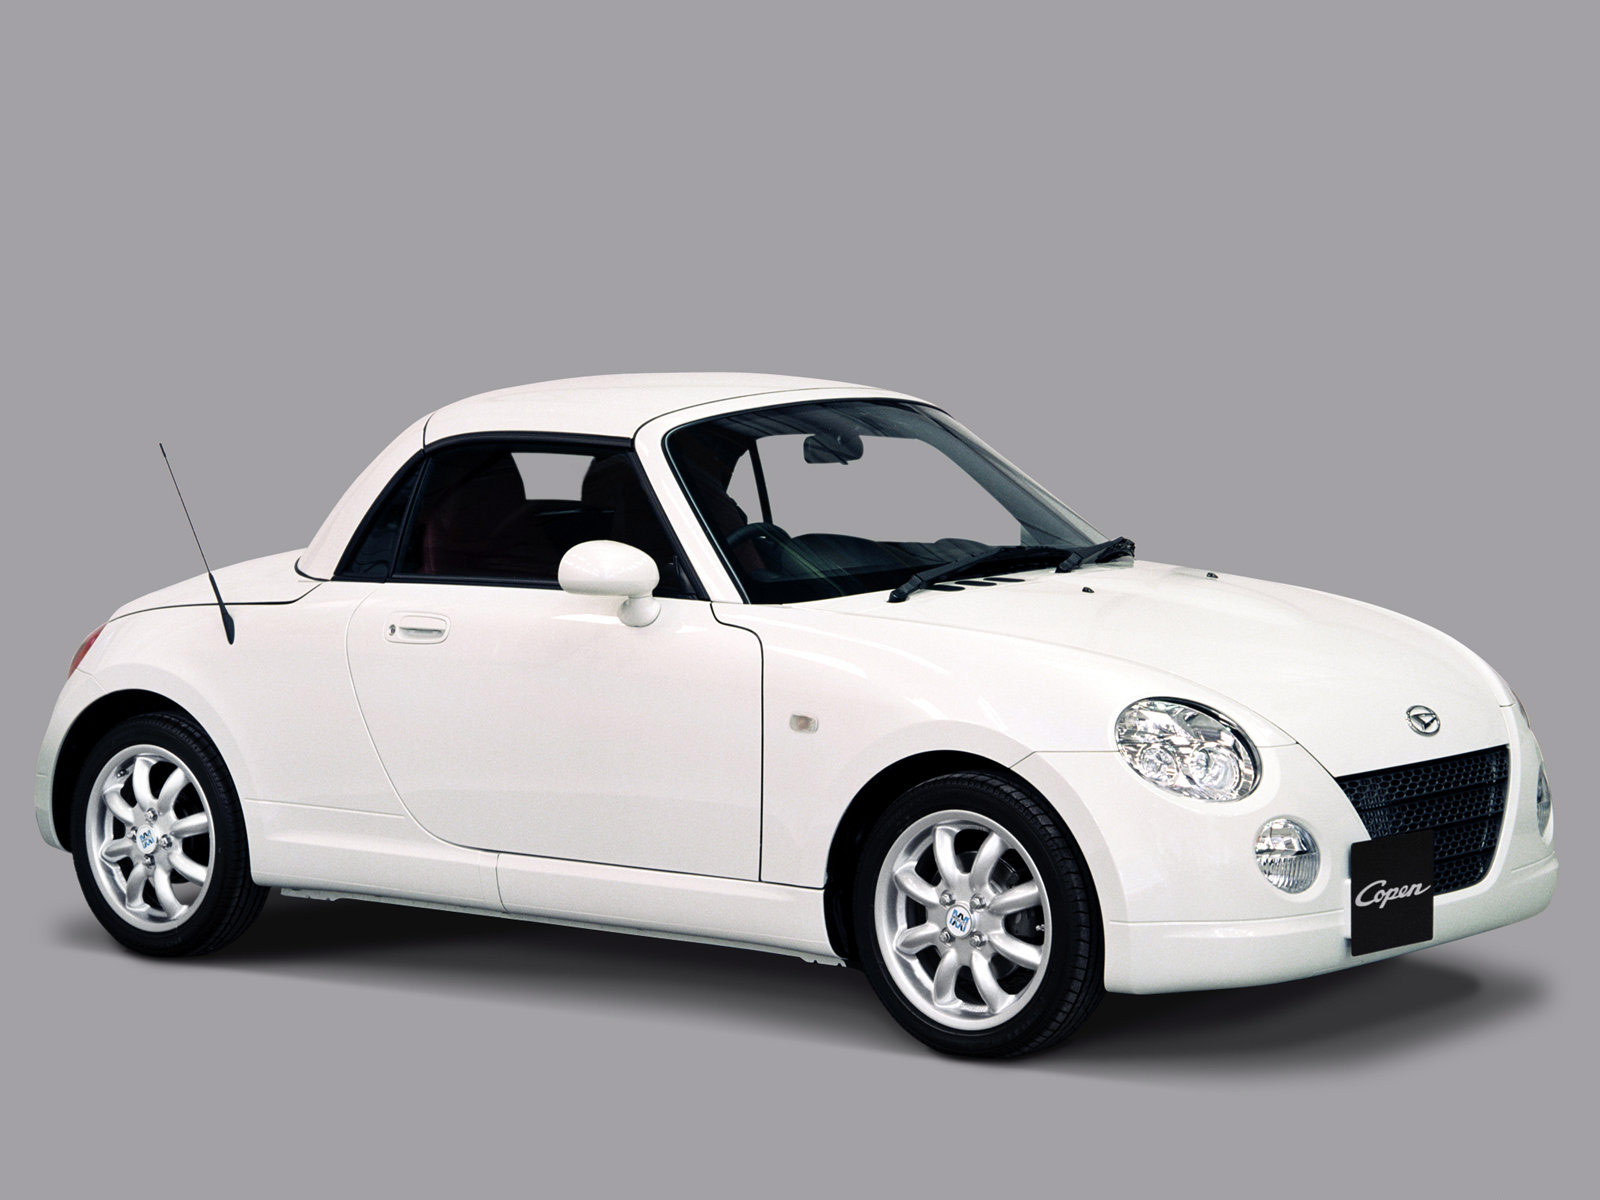 2007 daihatsu copen japan automobiles. Black Bedroom Furniture Sets. Home Design Ideas